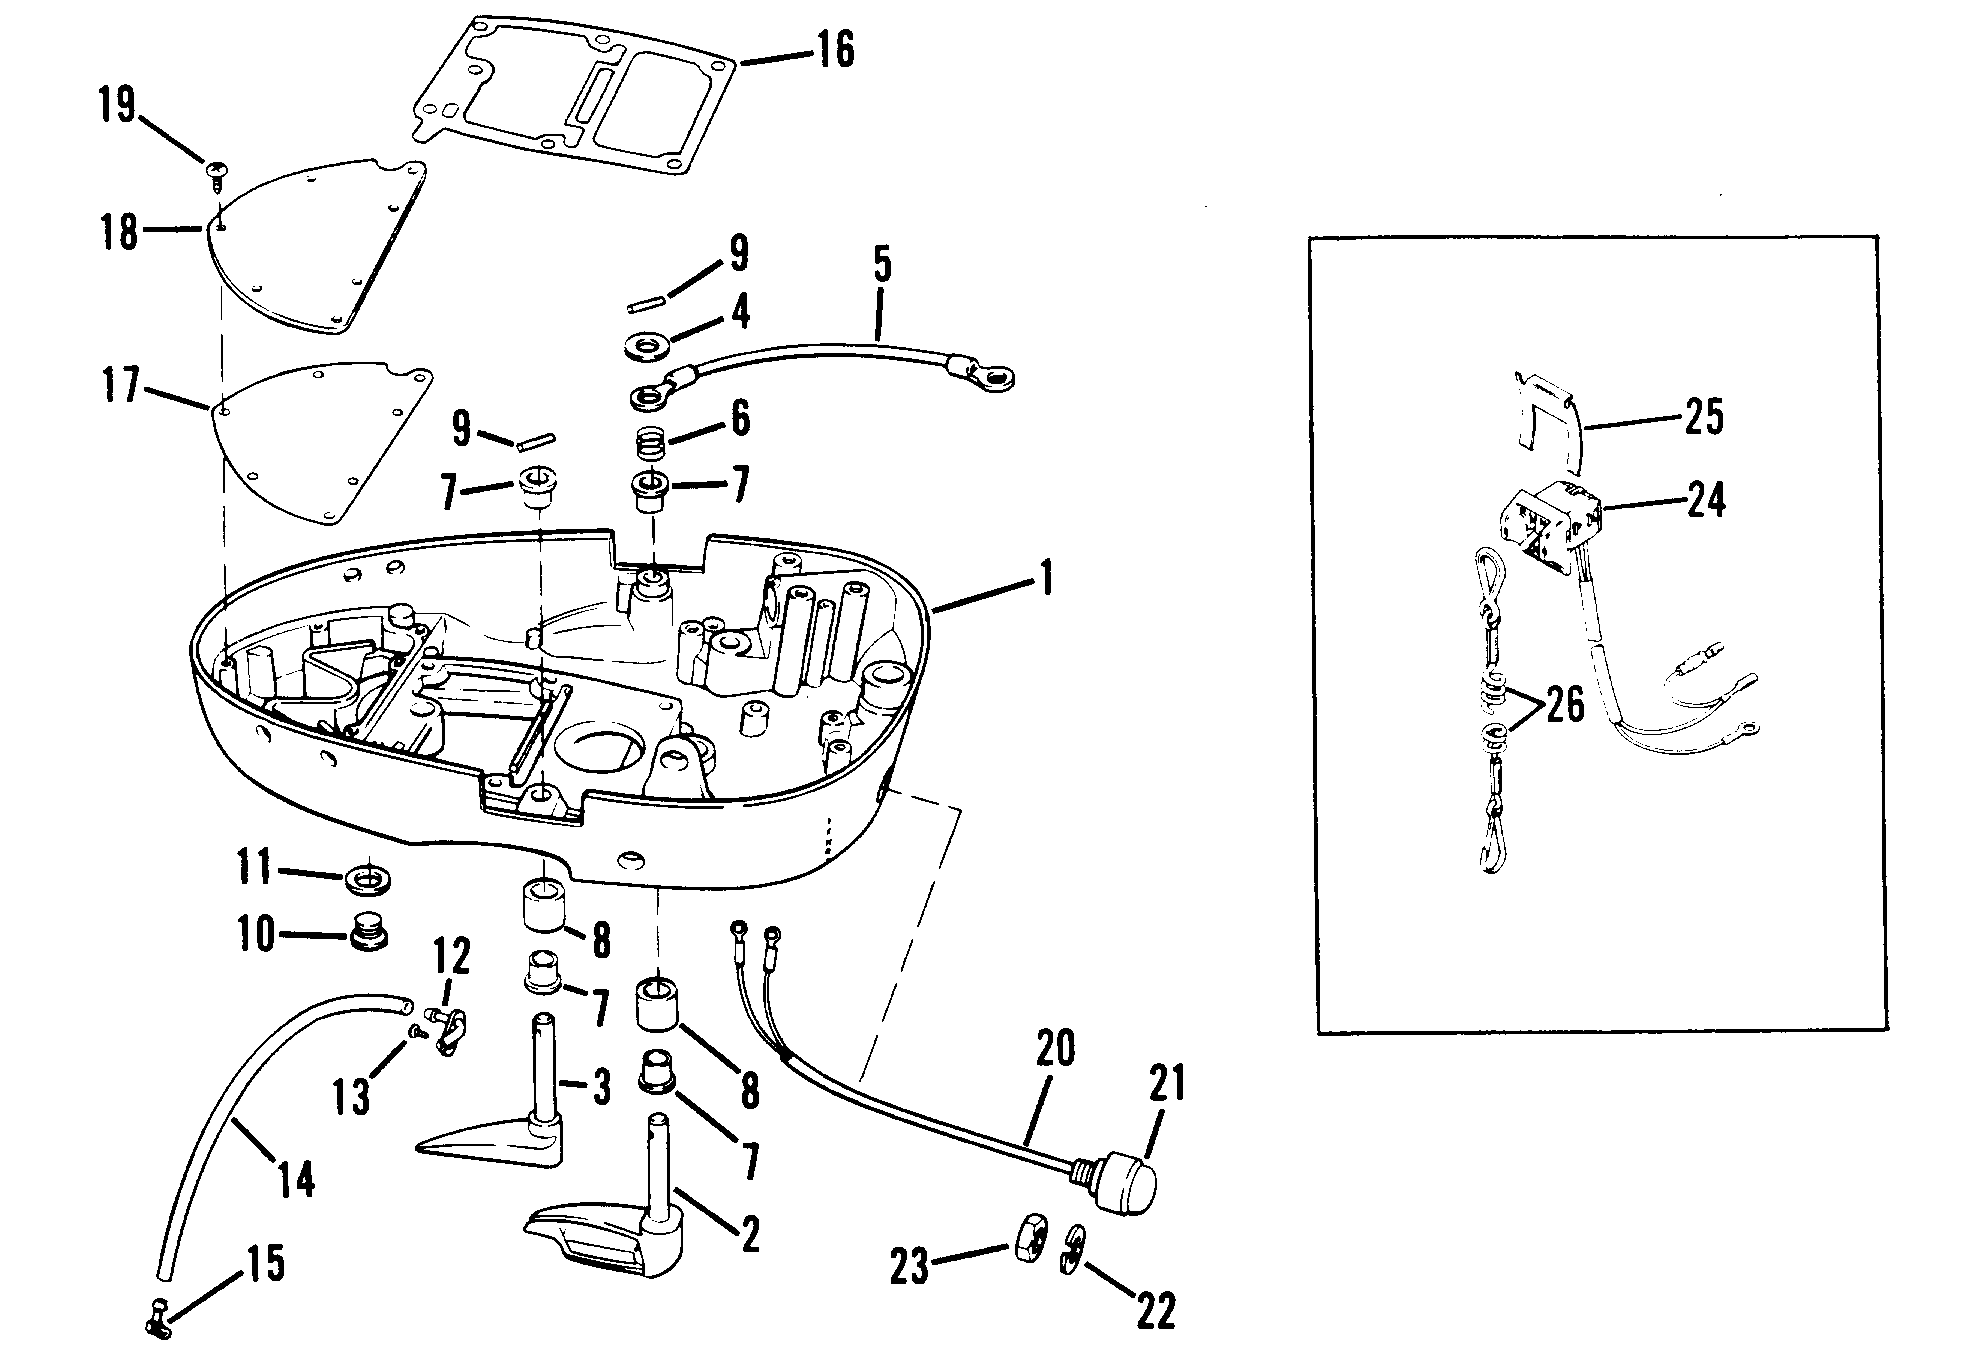 70 Hp Mercury Outboard Schematic